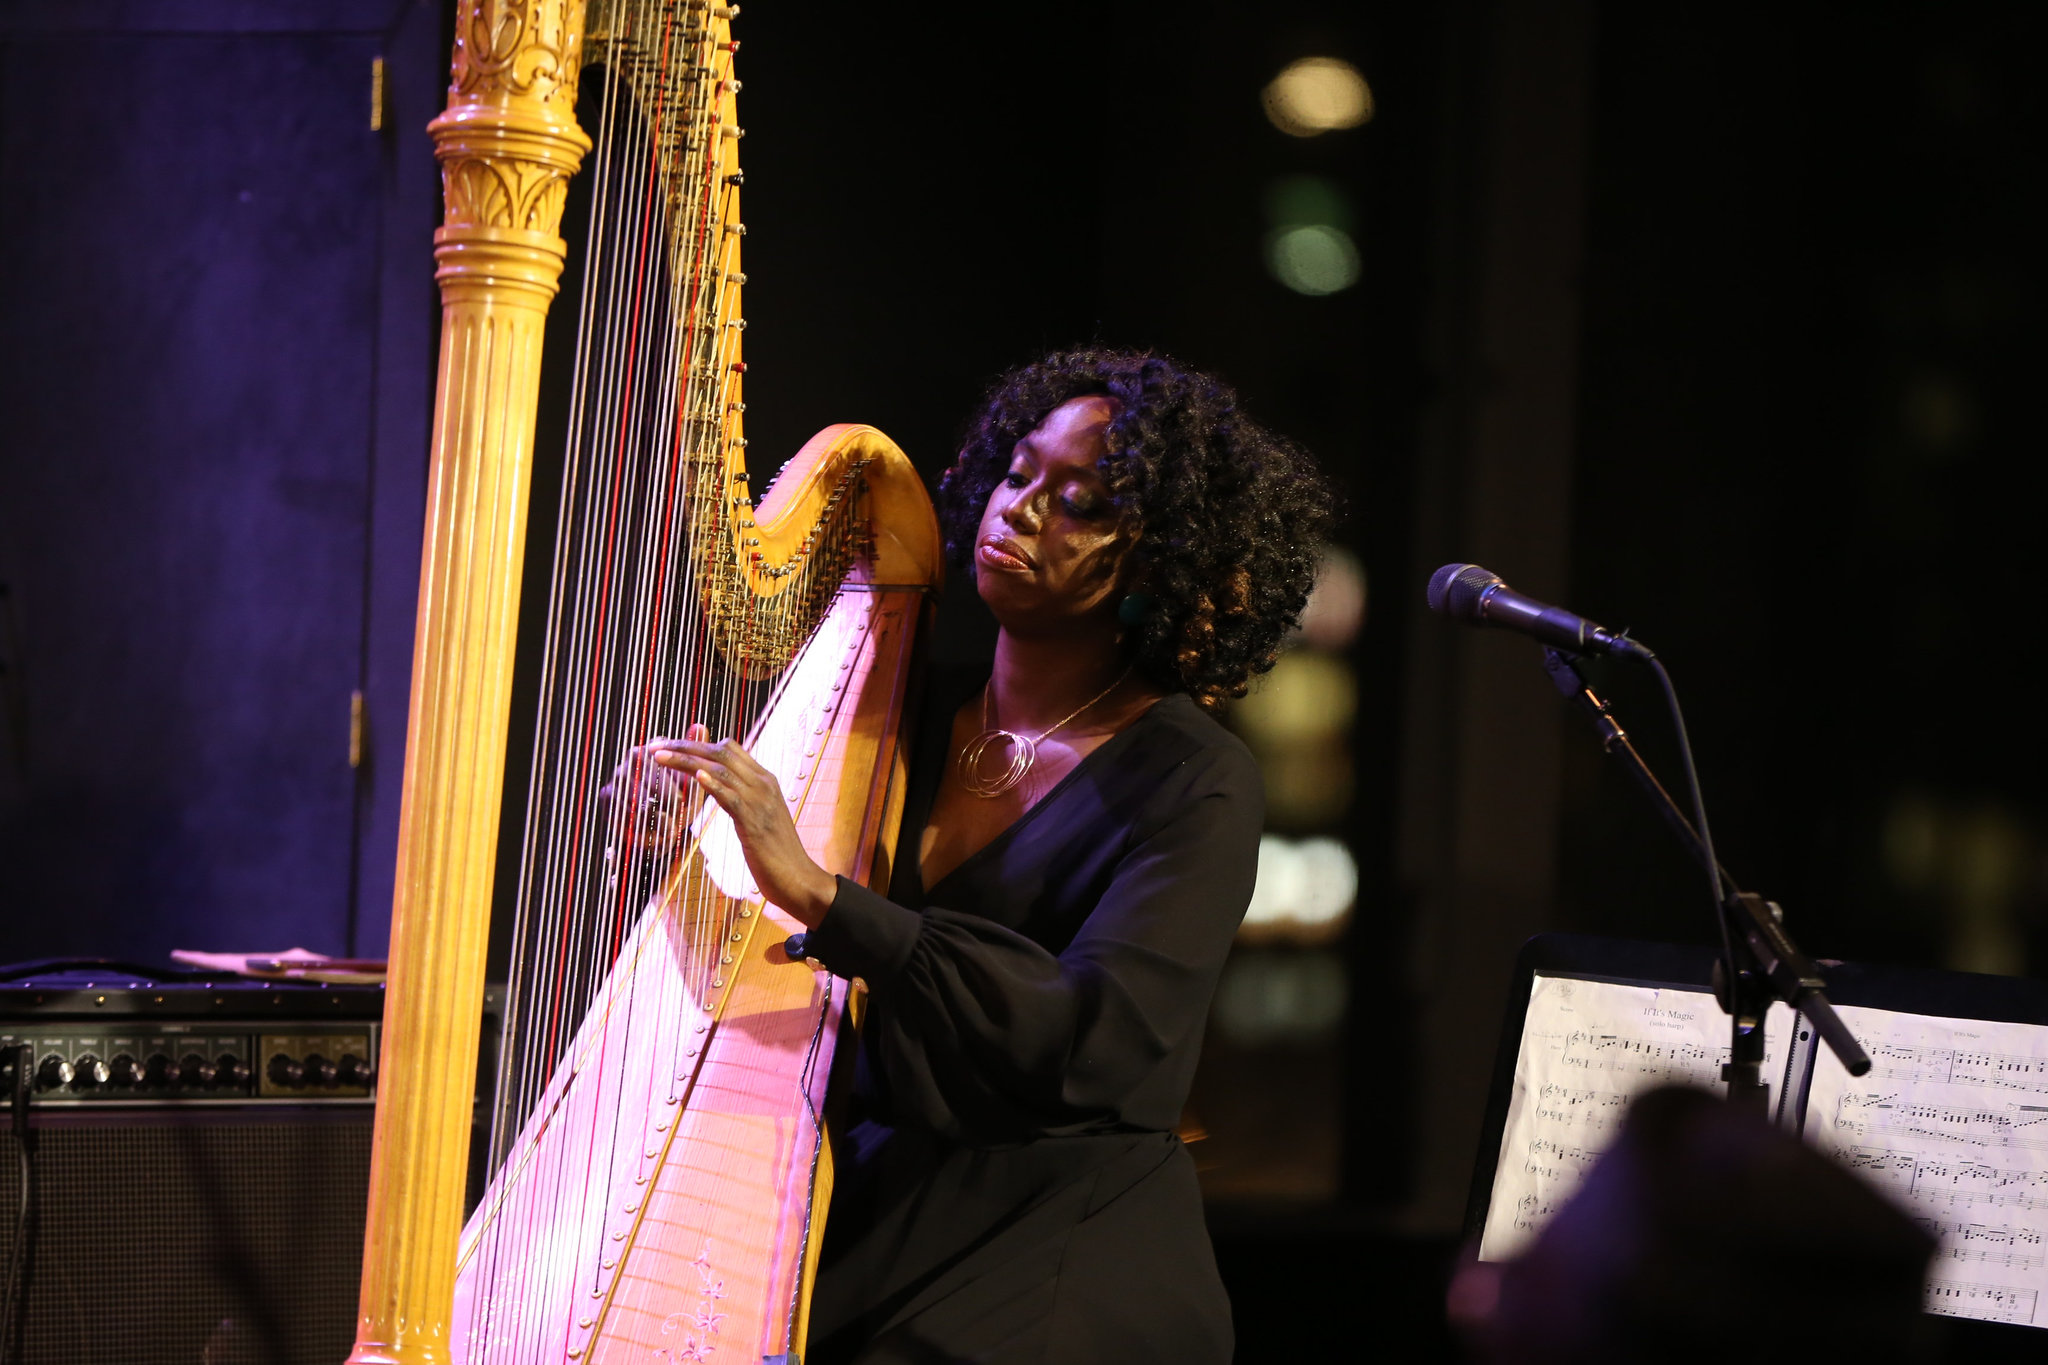 Brandee Younger, a Harpist Finding Her Way to Jazz – Feature in the New York Times